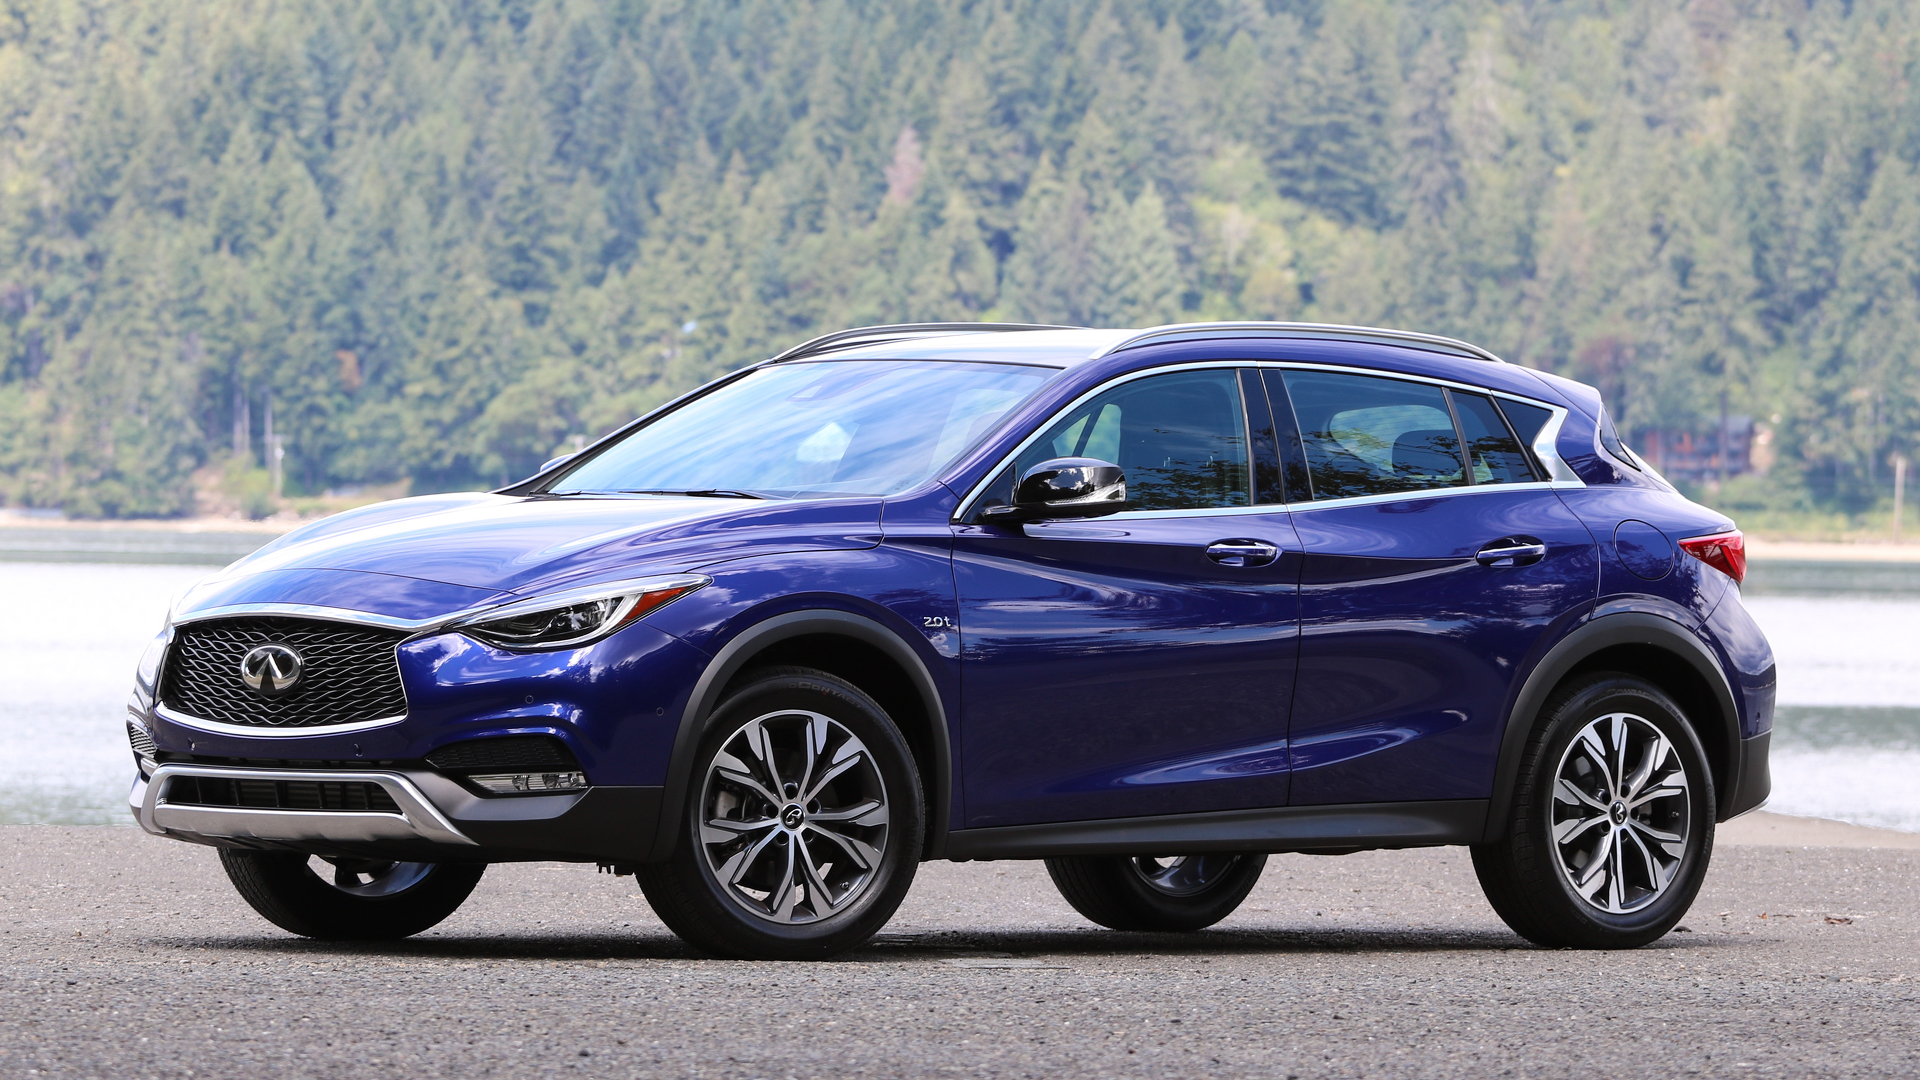 2020 Infiniti QX30 Becomes Electric Crossover SUV >> Infiniti Admits Gla Based Qx30 Is Not A Successful Product